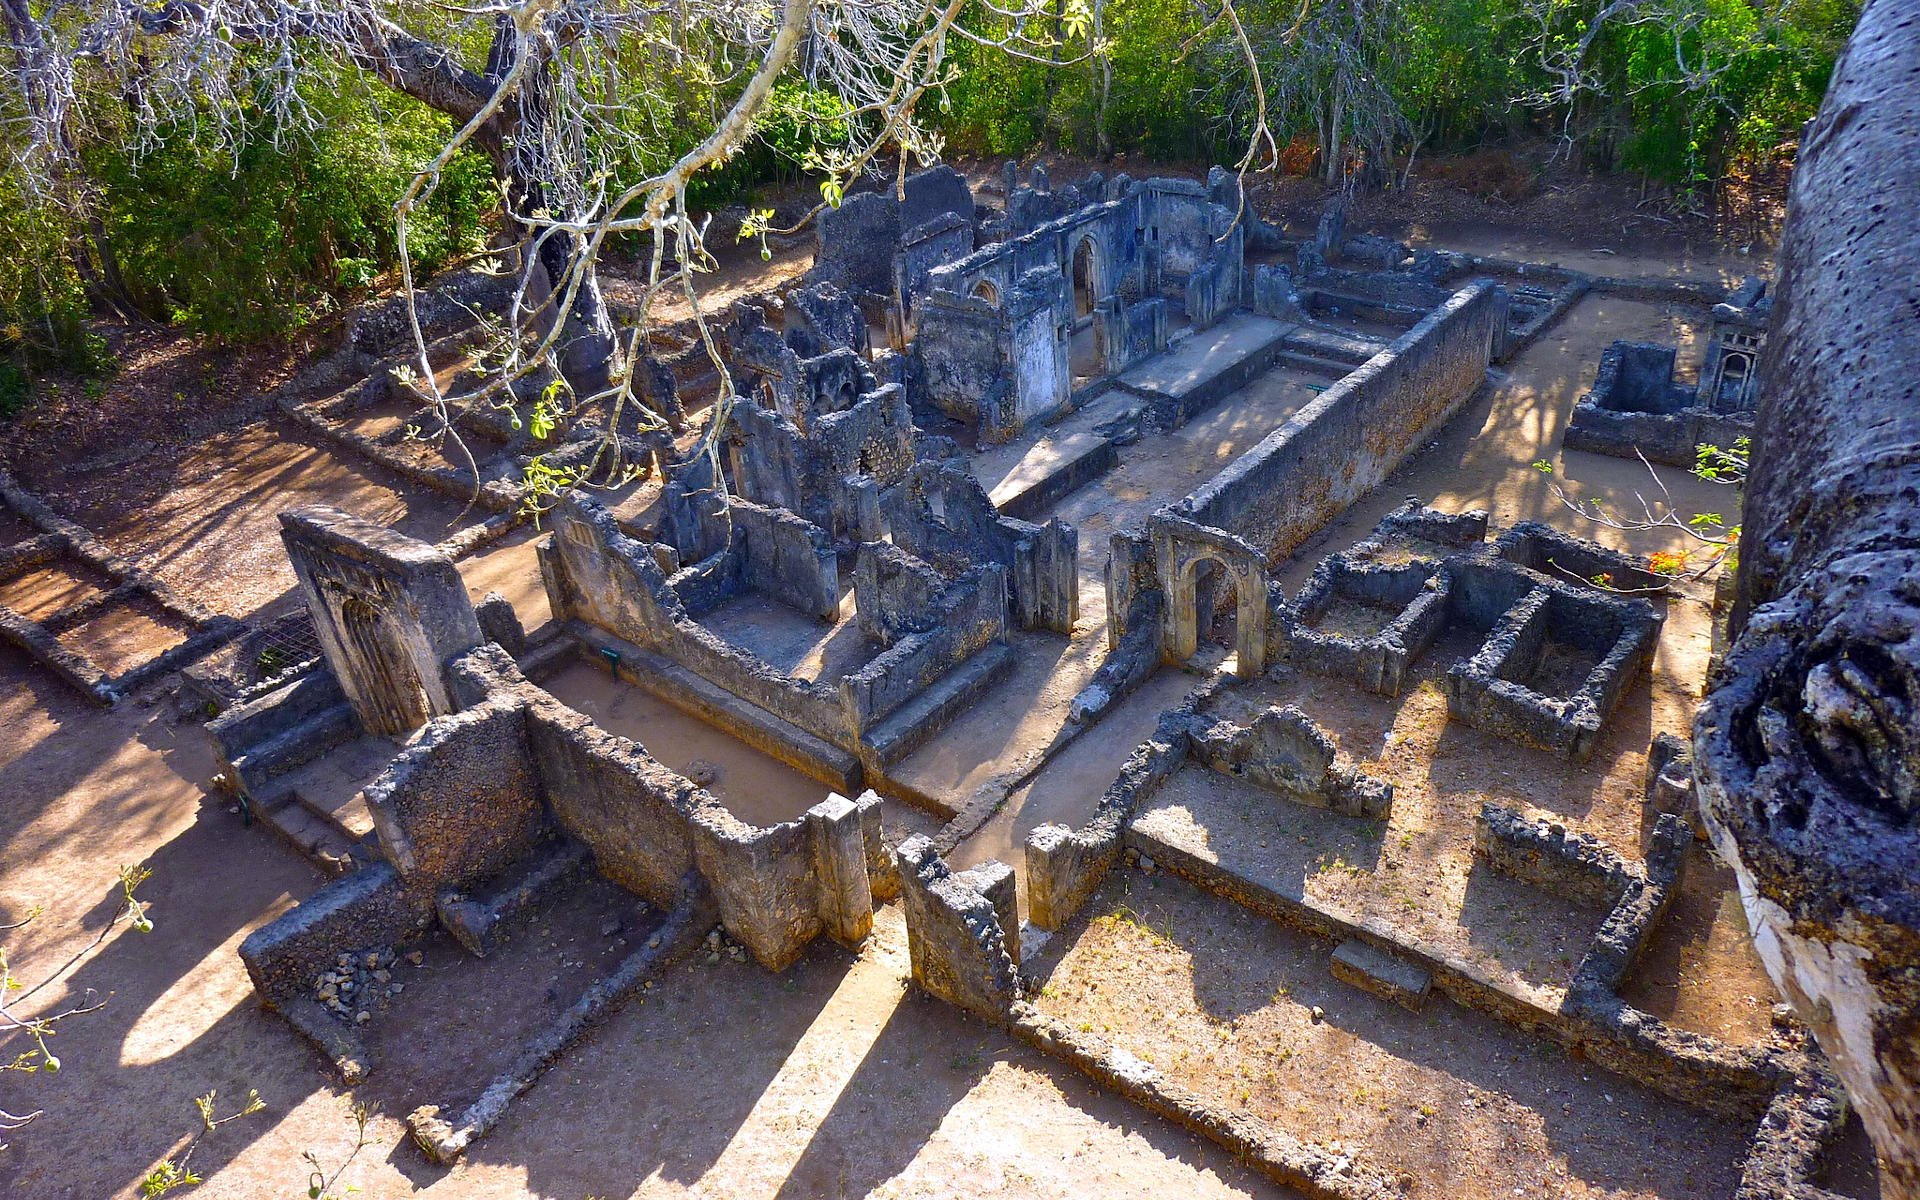 Gedi or Gede Ruins in Kilifi County are probably one of the most celebrated of old Kenyan ruins.